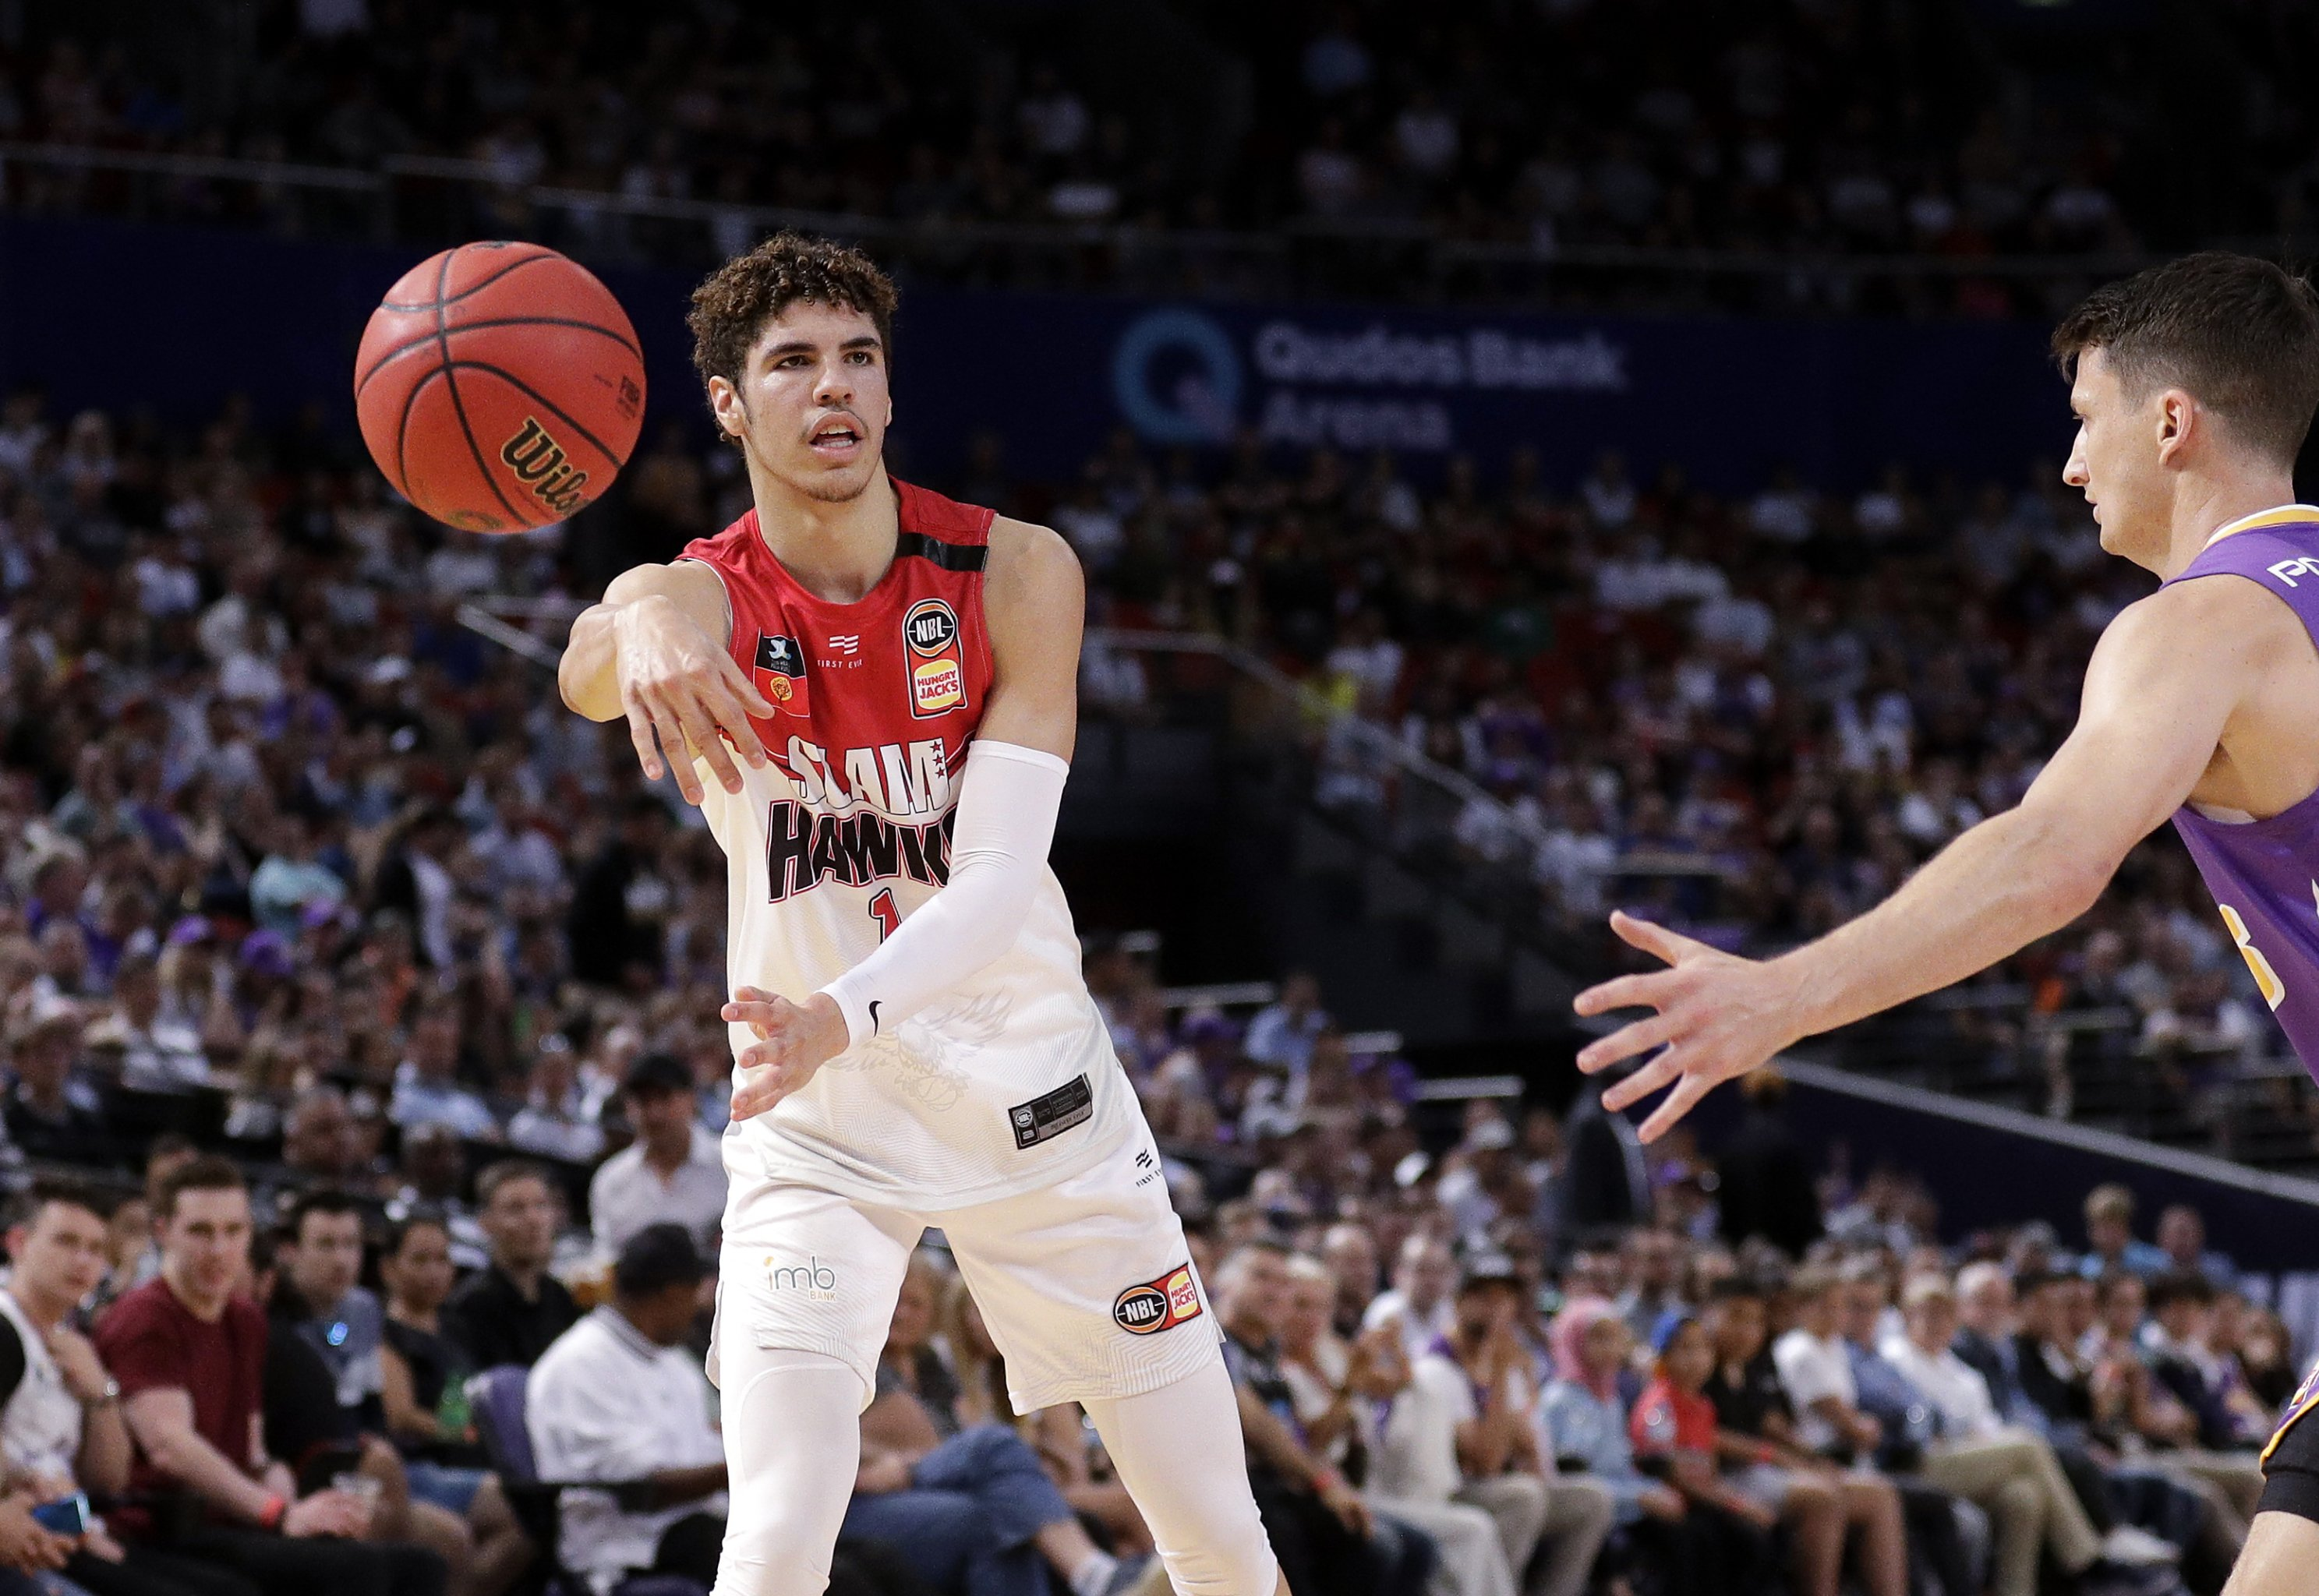 Teams That Should Trade Up In 2020 Nba Draft For Lamelo Ball Bleacher Report Latest News Videos And Highlights